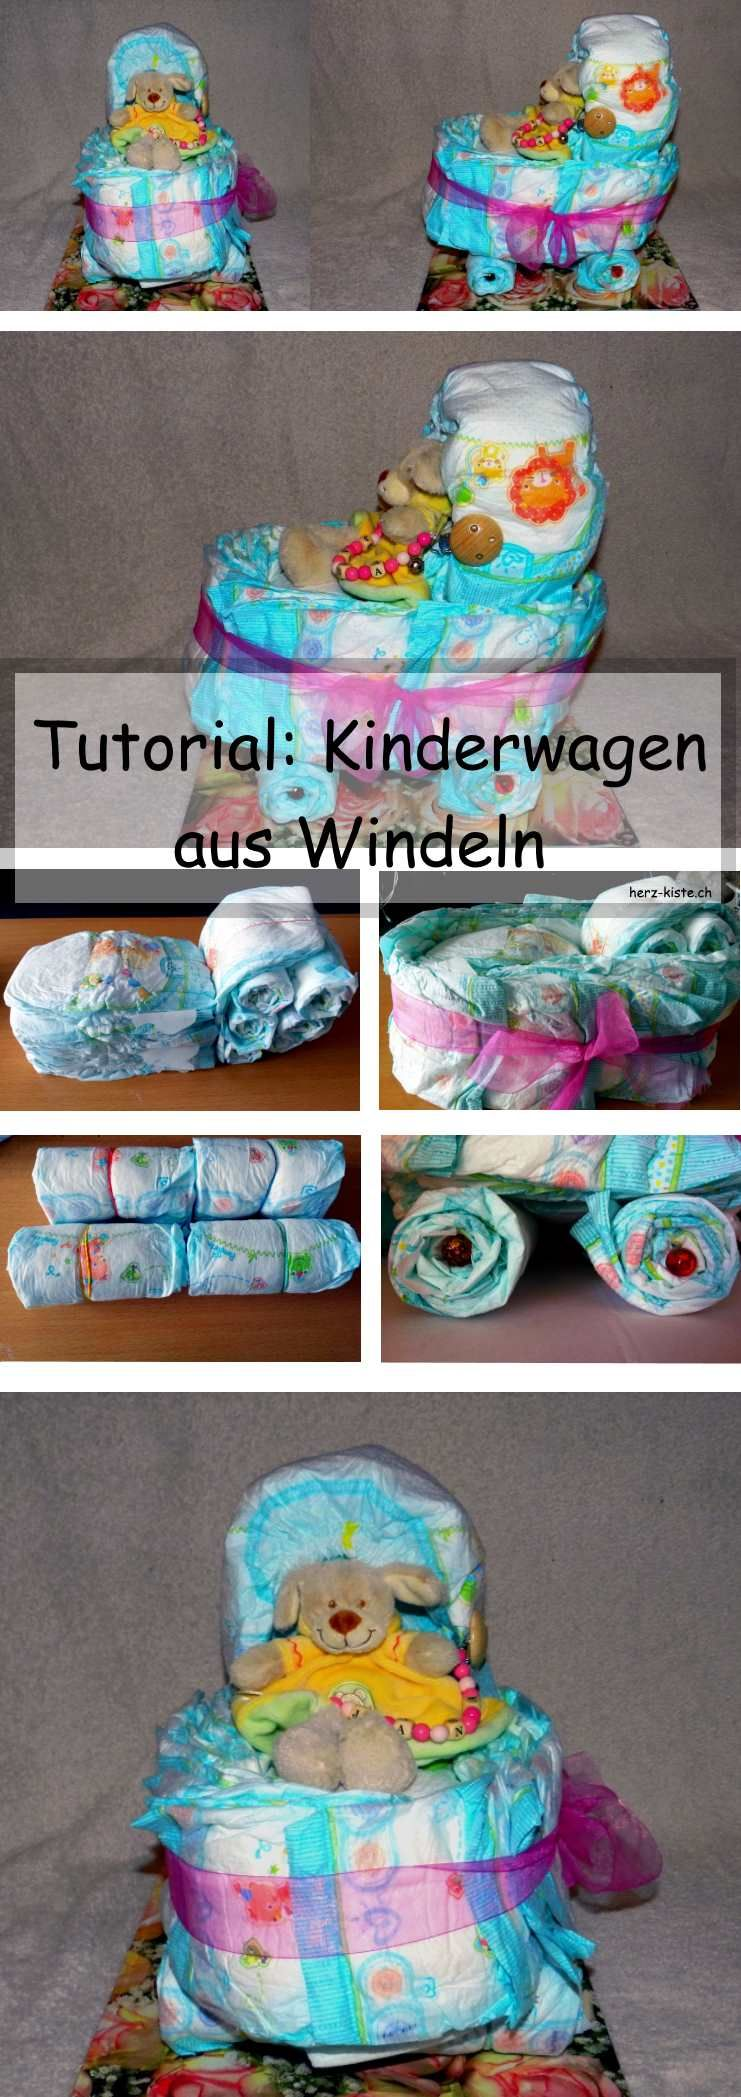 windeltorte mal anders ein windelkinderwagen diy projekte aus der herz kiste pinterest. Black Bedroom Furniture Sets. Home Design Ideas